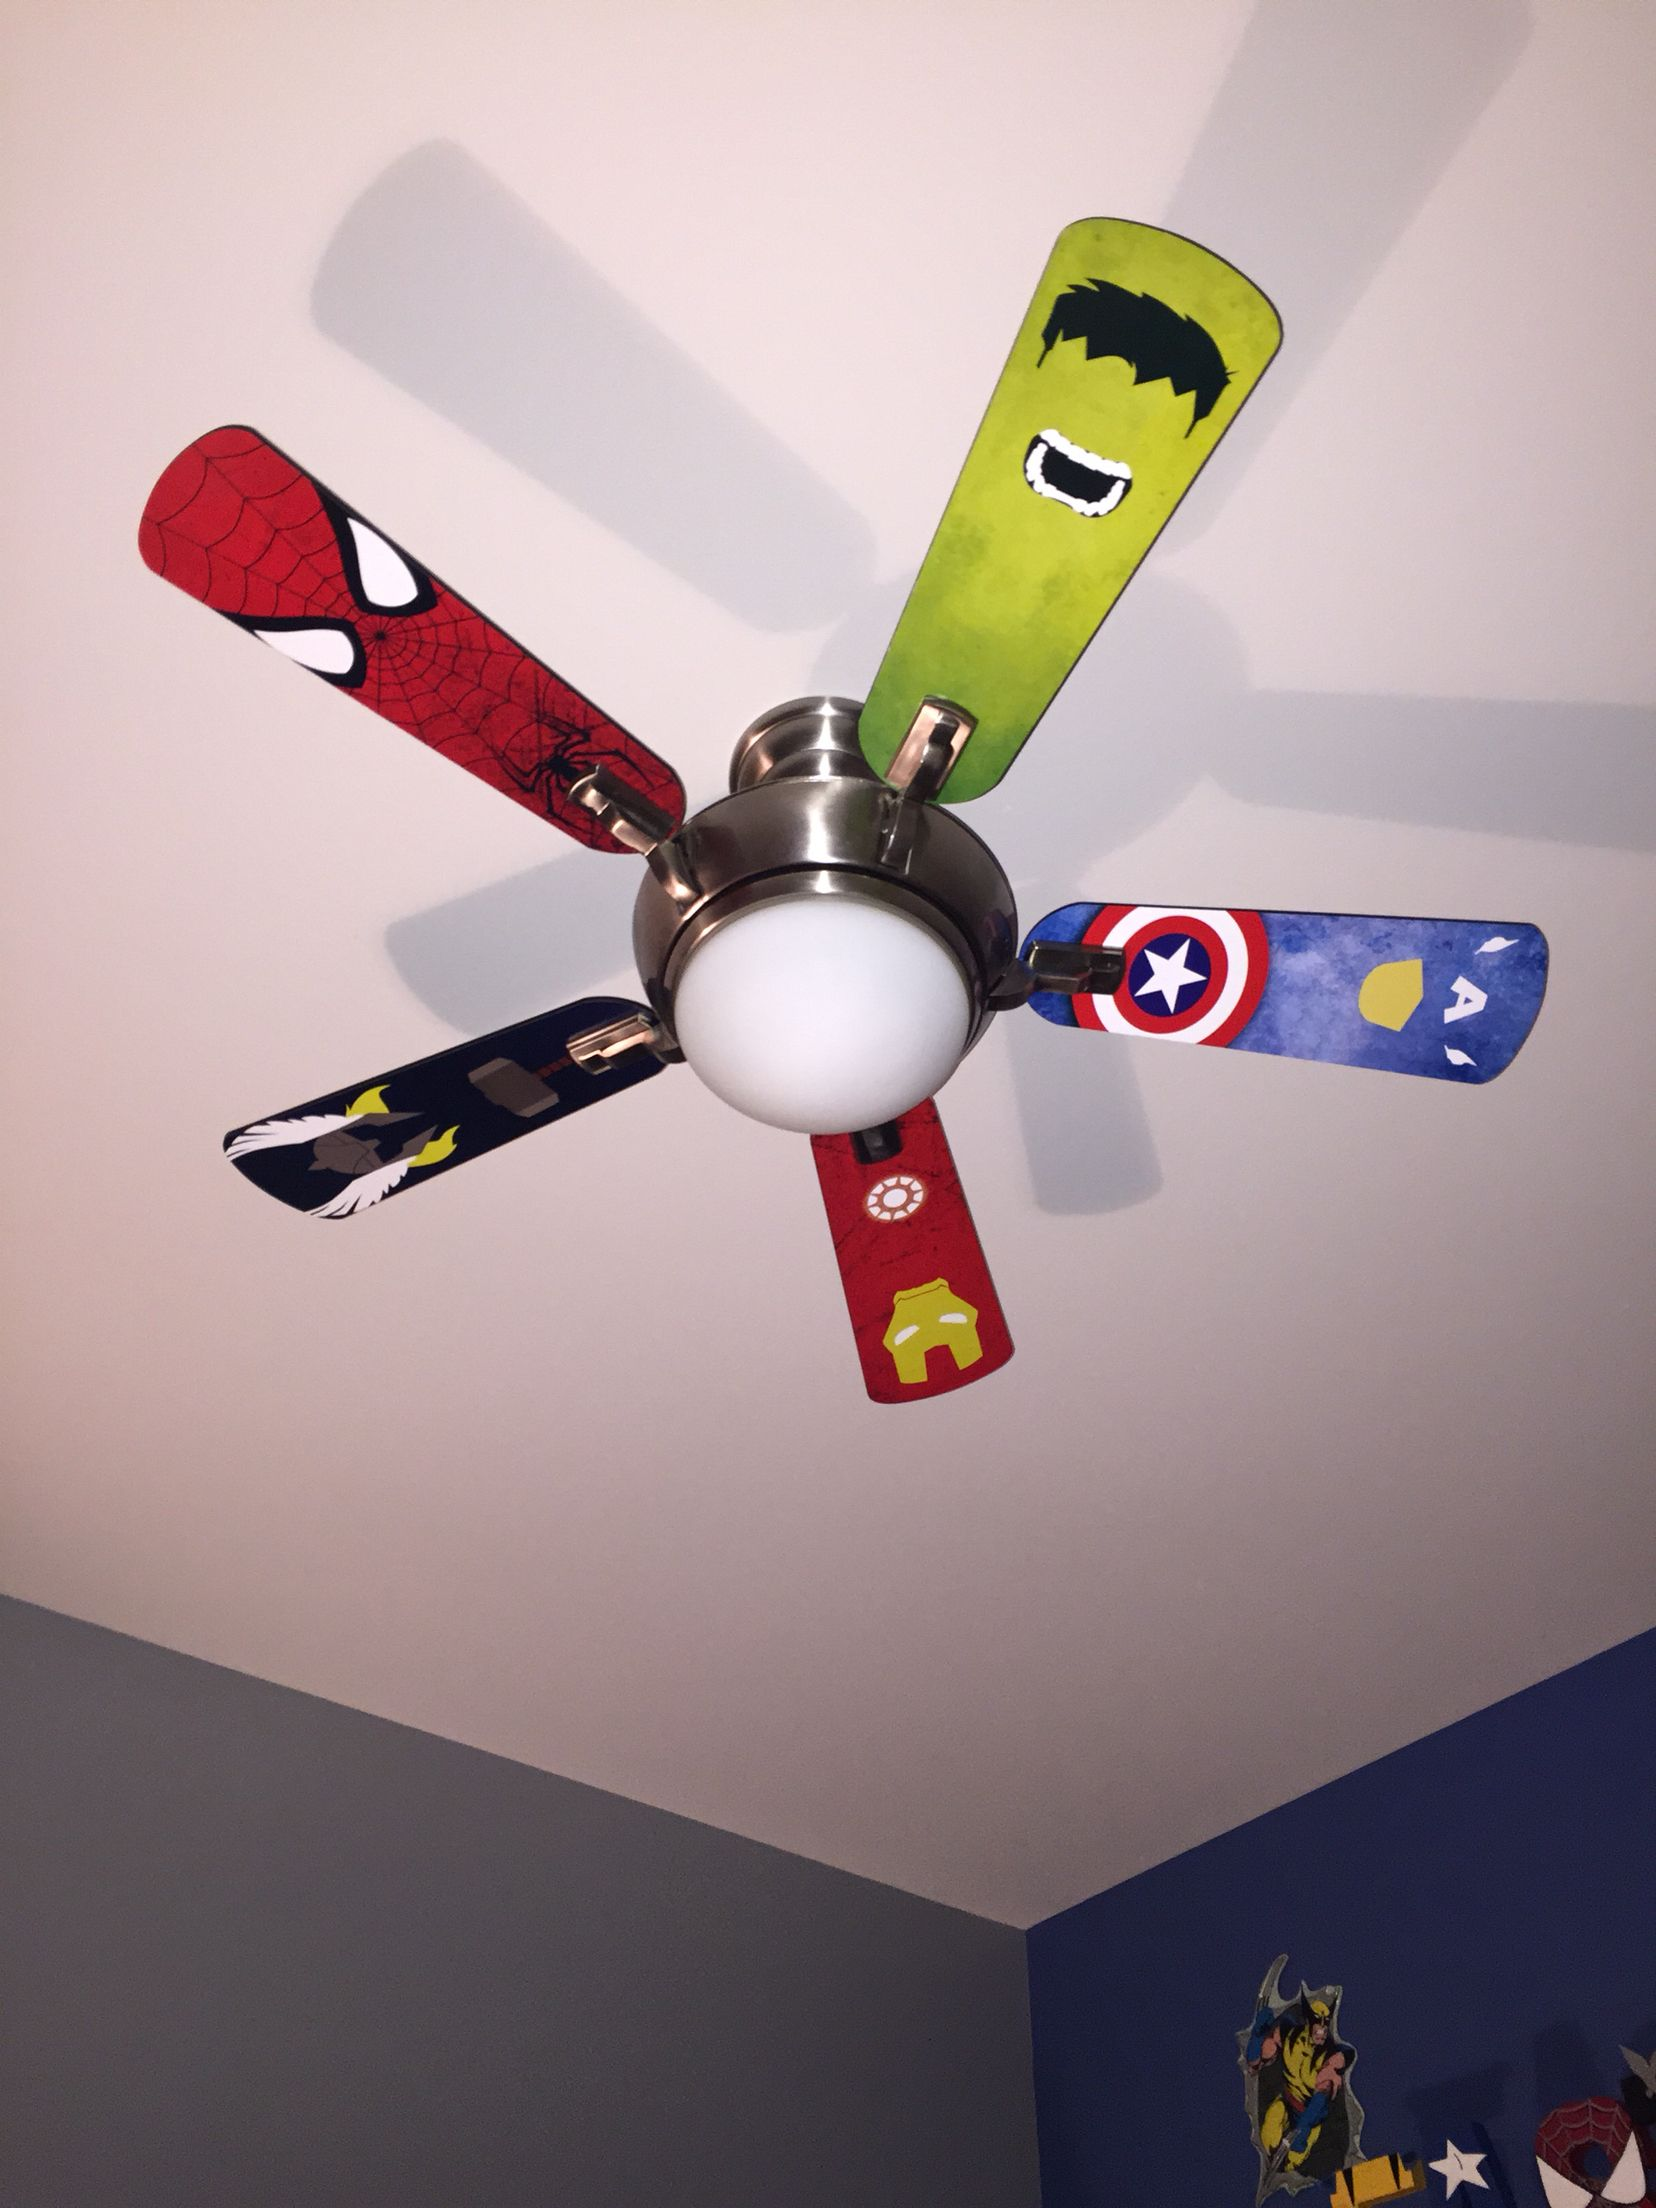 Superhero Ceiling Fan Blades Superhero Room Superhero Bedroom Kid Room Decor